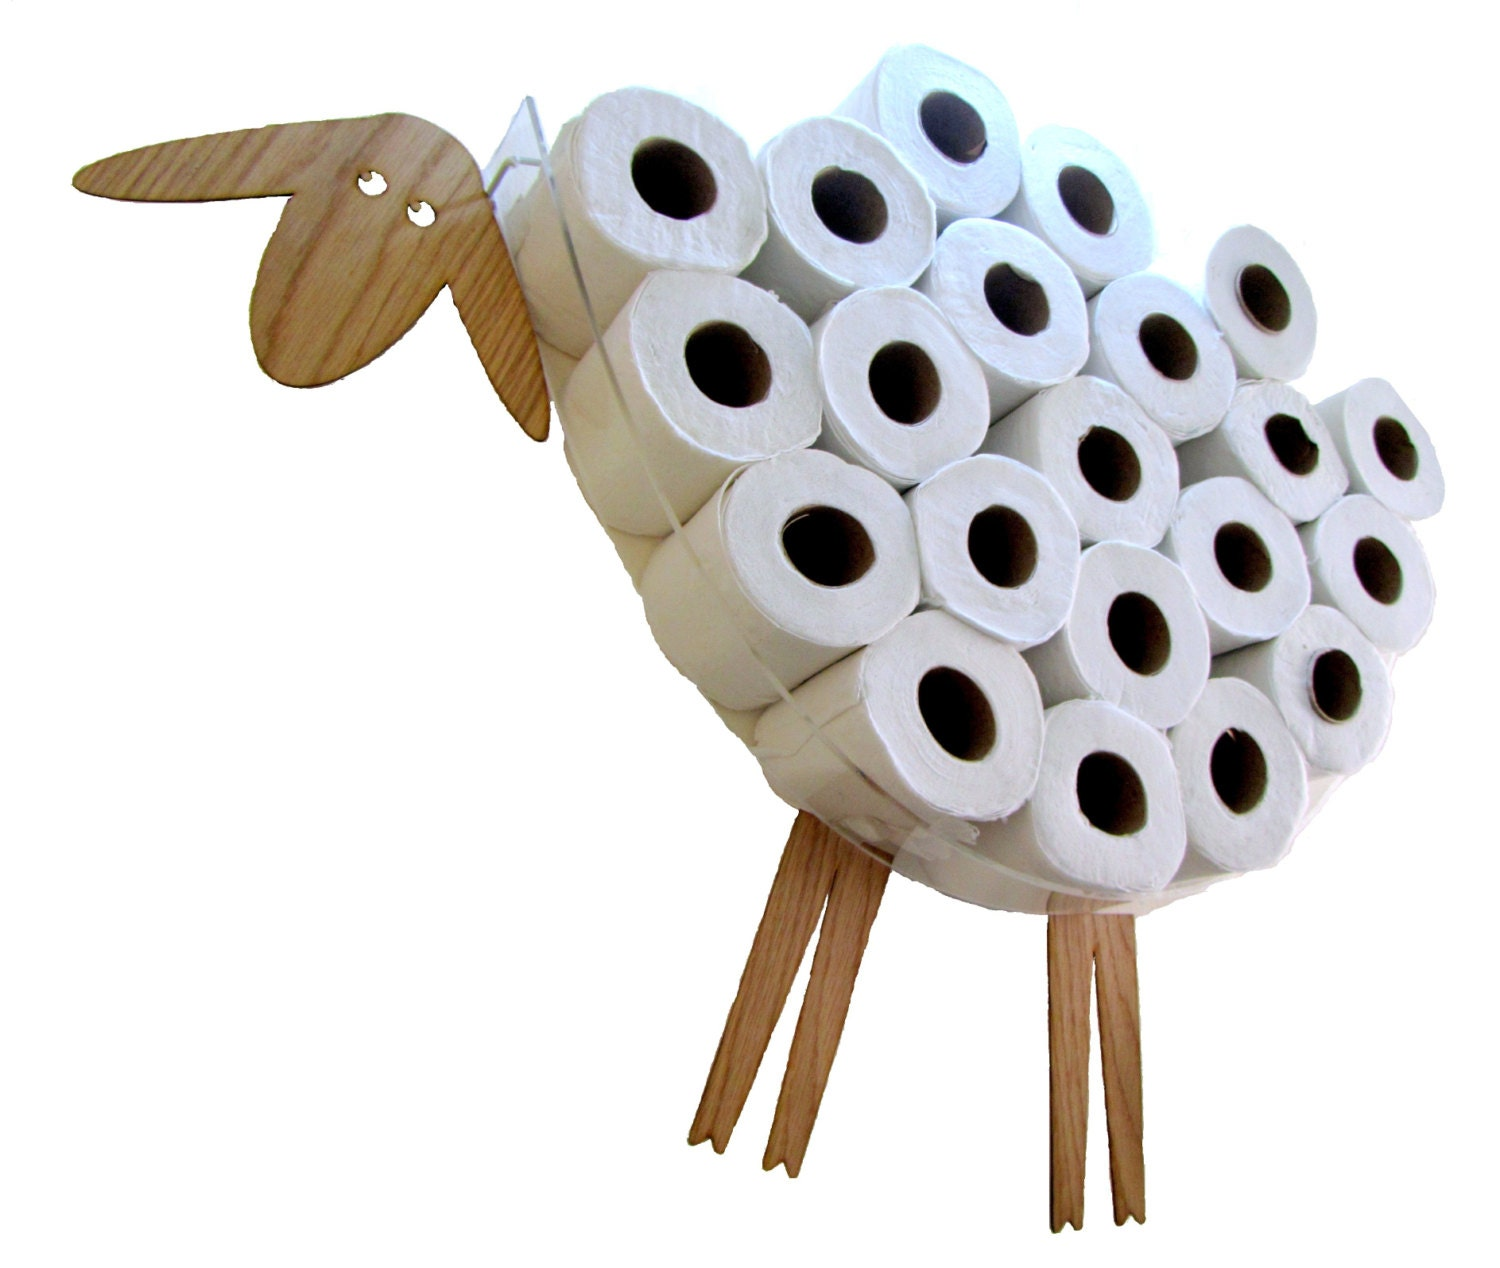 Sheep shelf a wall shelf for storing toilet paper rolls for Loo roll storage